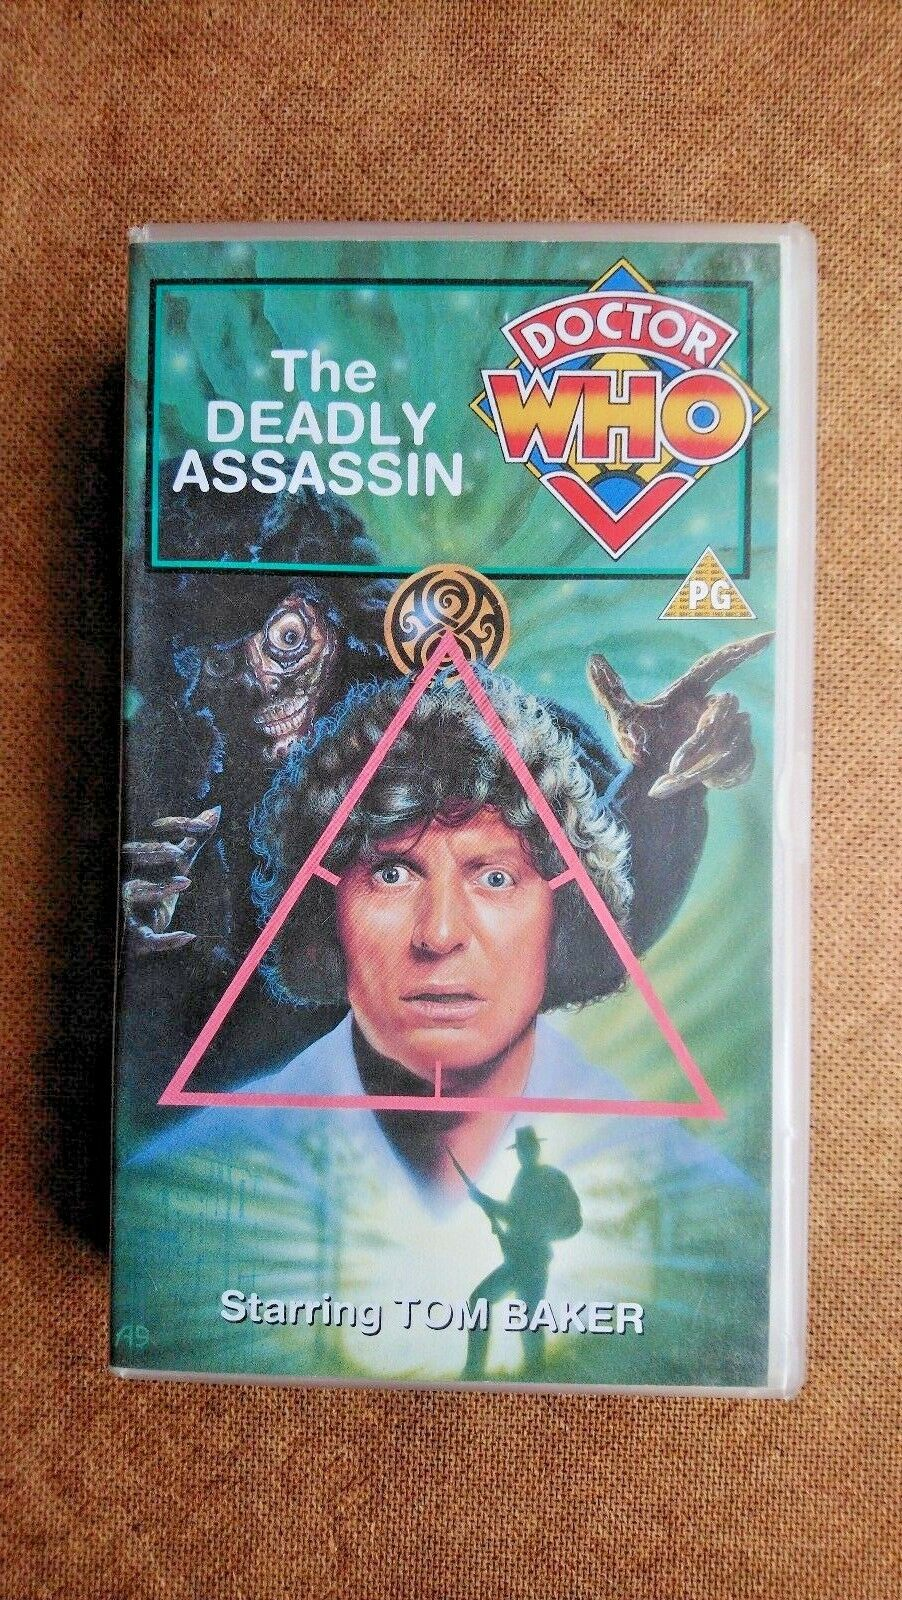 Doctor Who - The Deadly Assassin (VHS, 1995) - Tom Baker